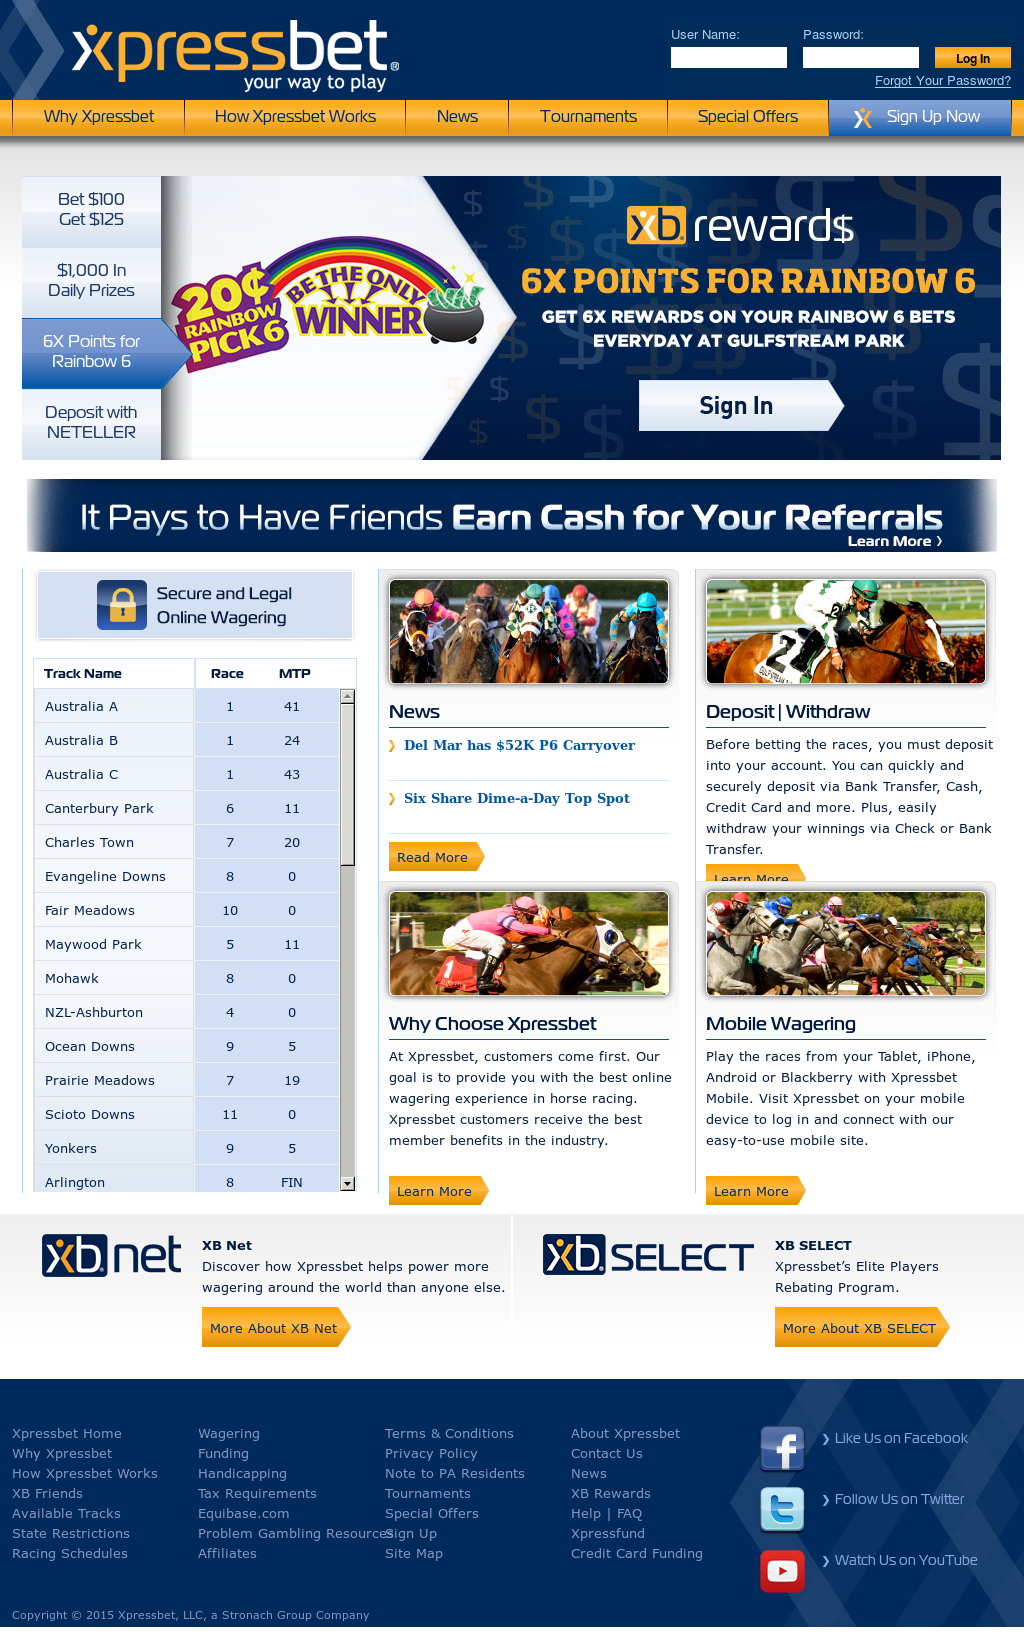 Xpressbet Competitors, Revenue and Employees - Owler Company